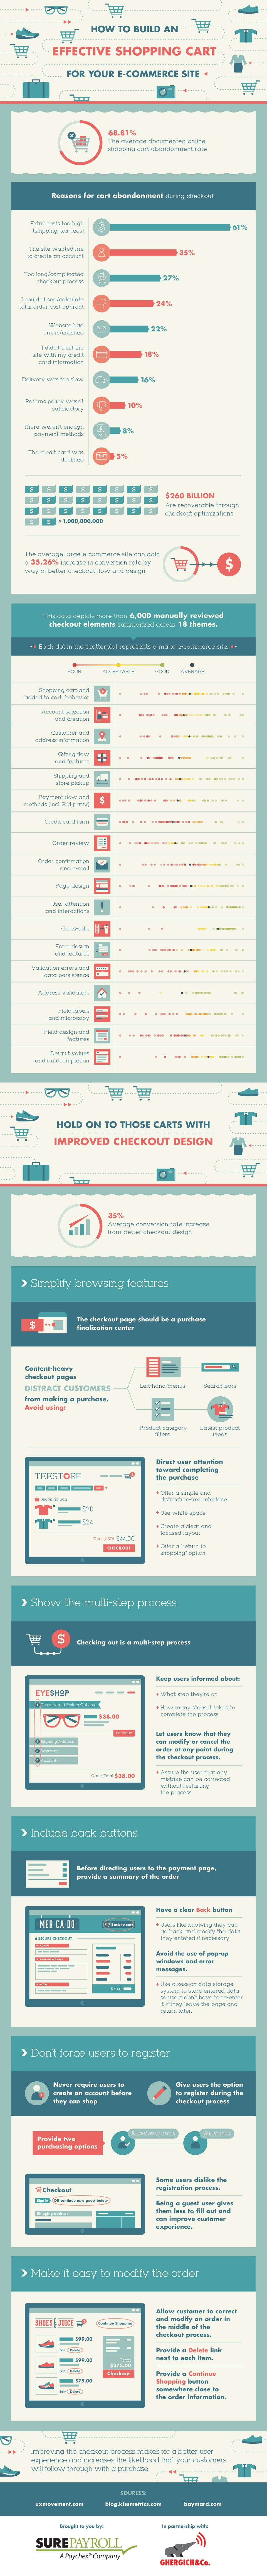 how-to-build-an-effective-shopping-cart-for-your-e-commerce-site